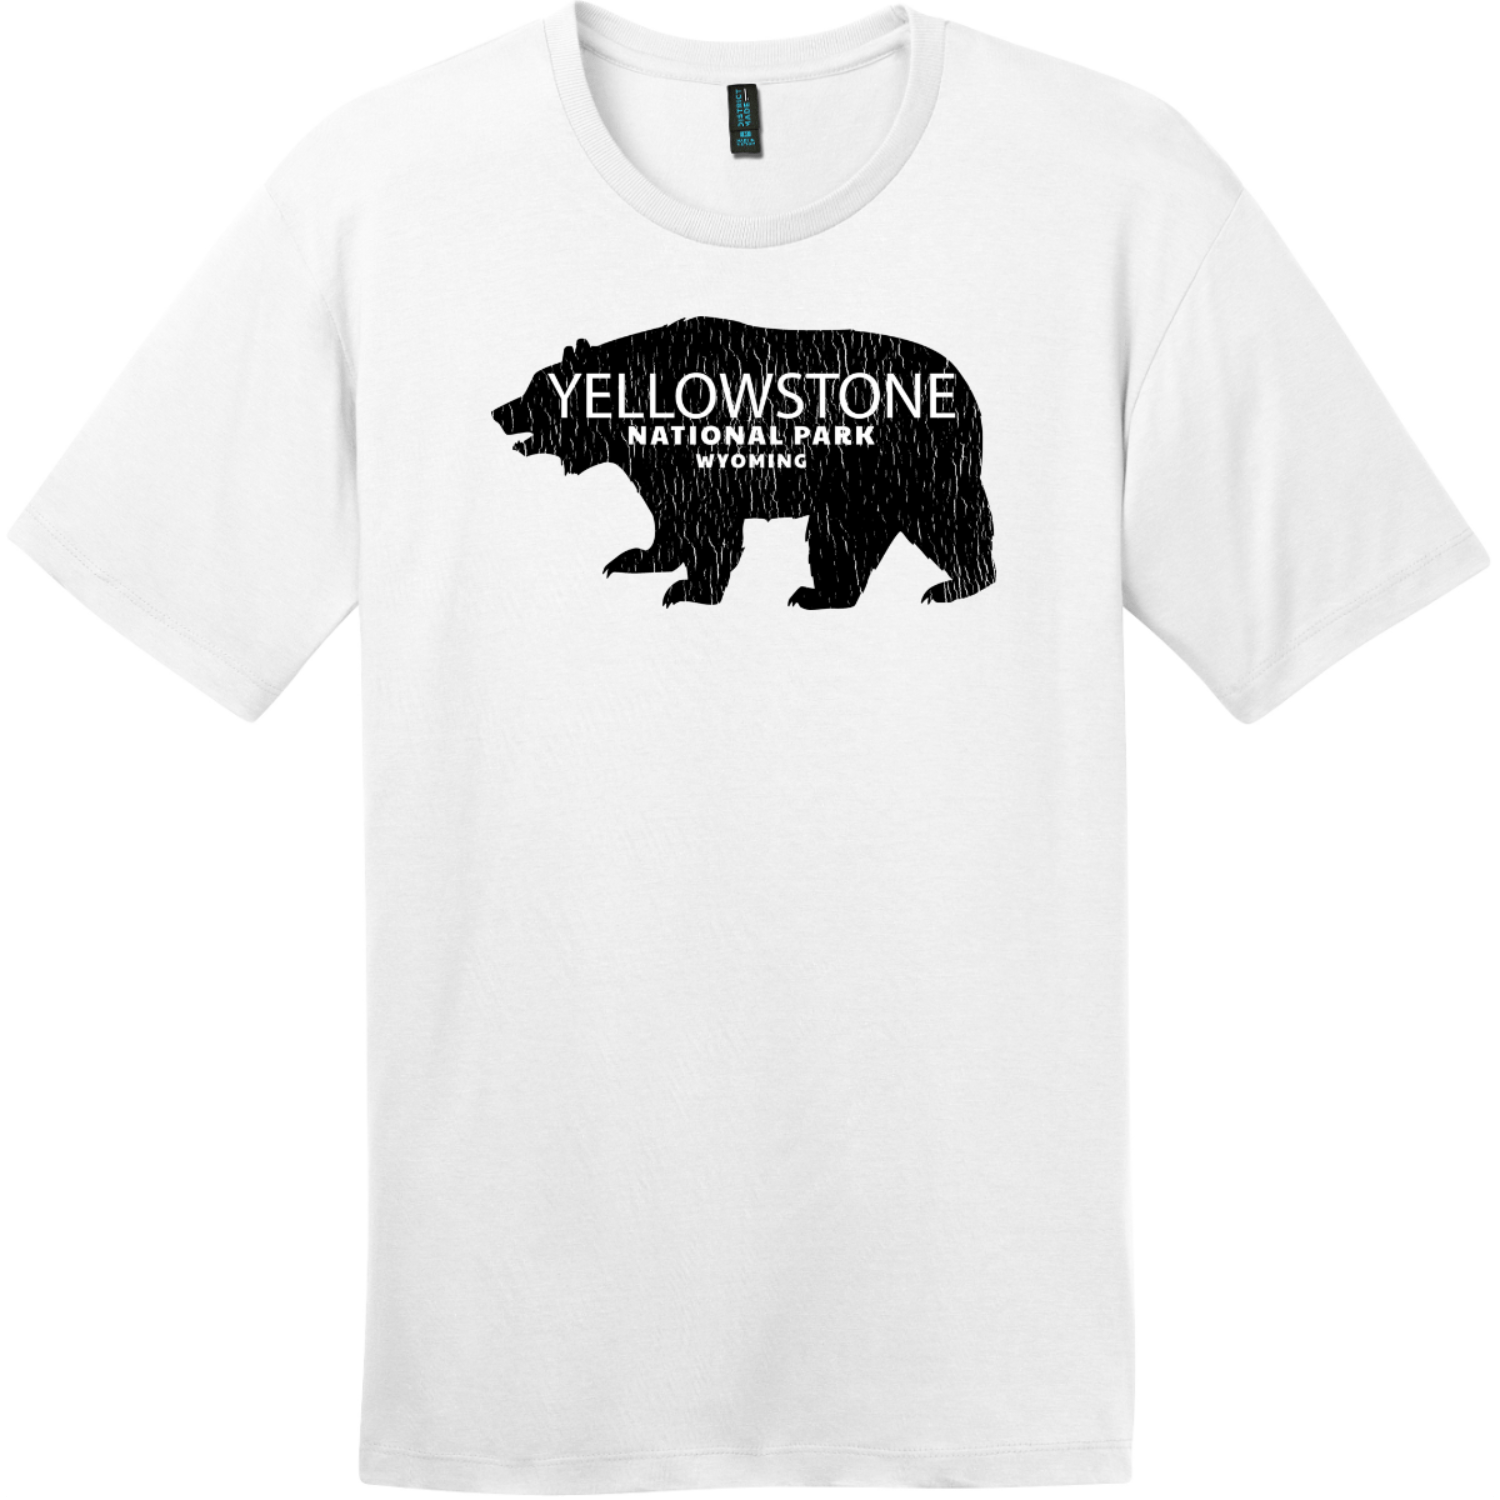 Yellowstone National Park Wyoming Bear T-Shirt Bright White District Perfect Weight Tee DT104